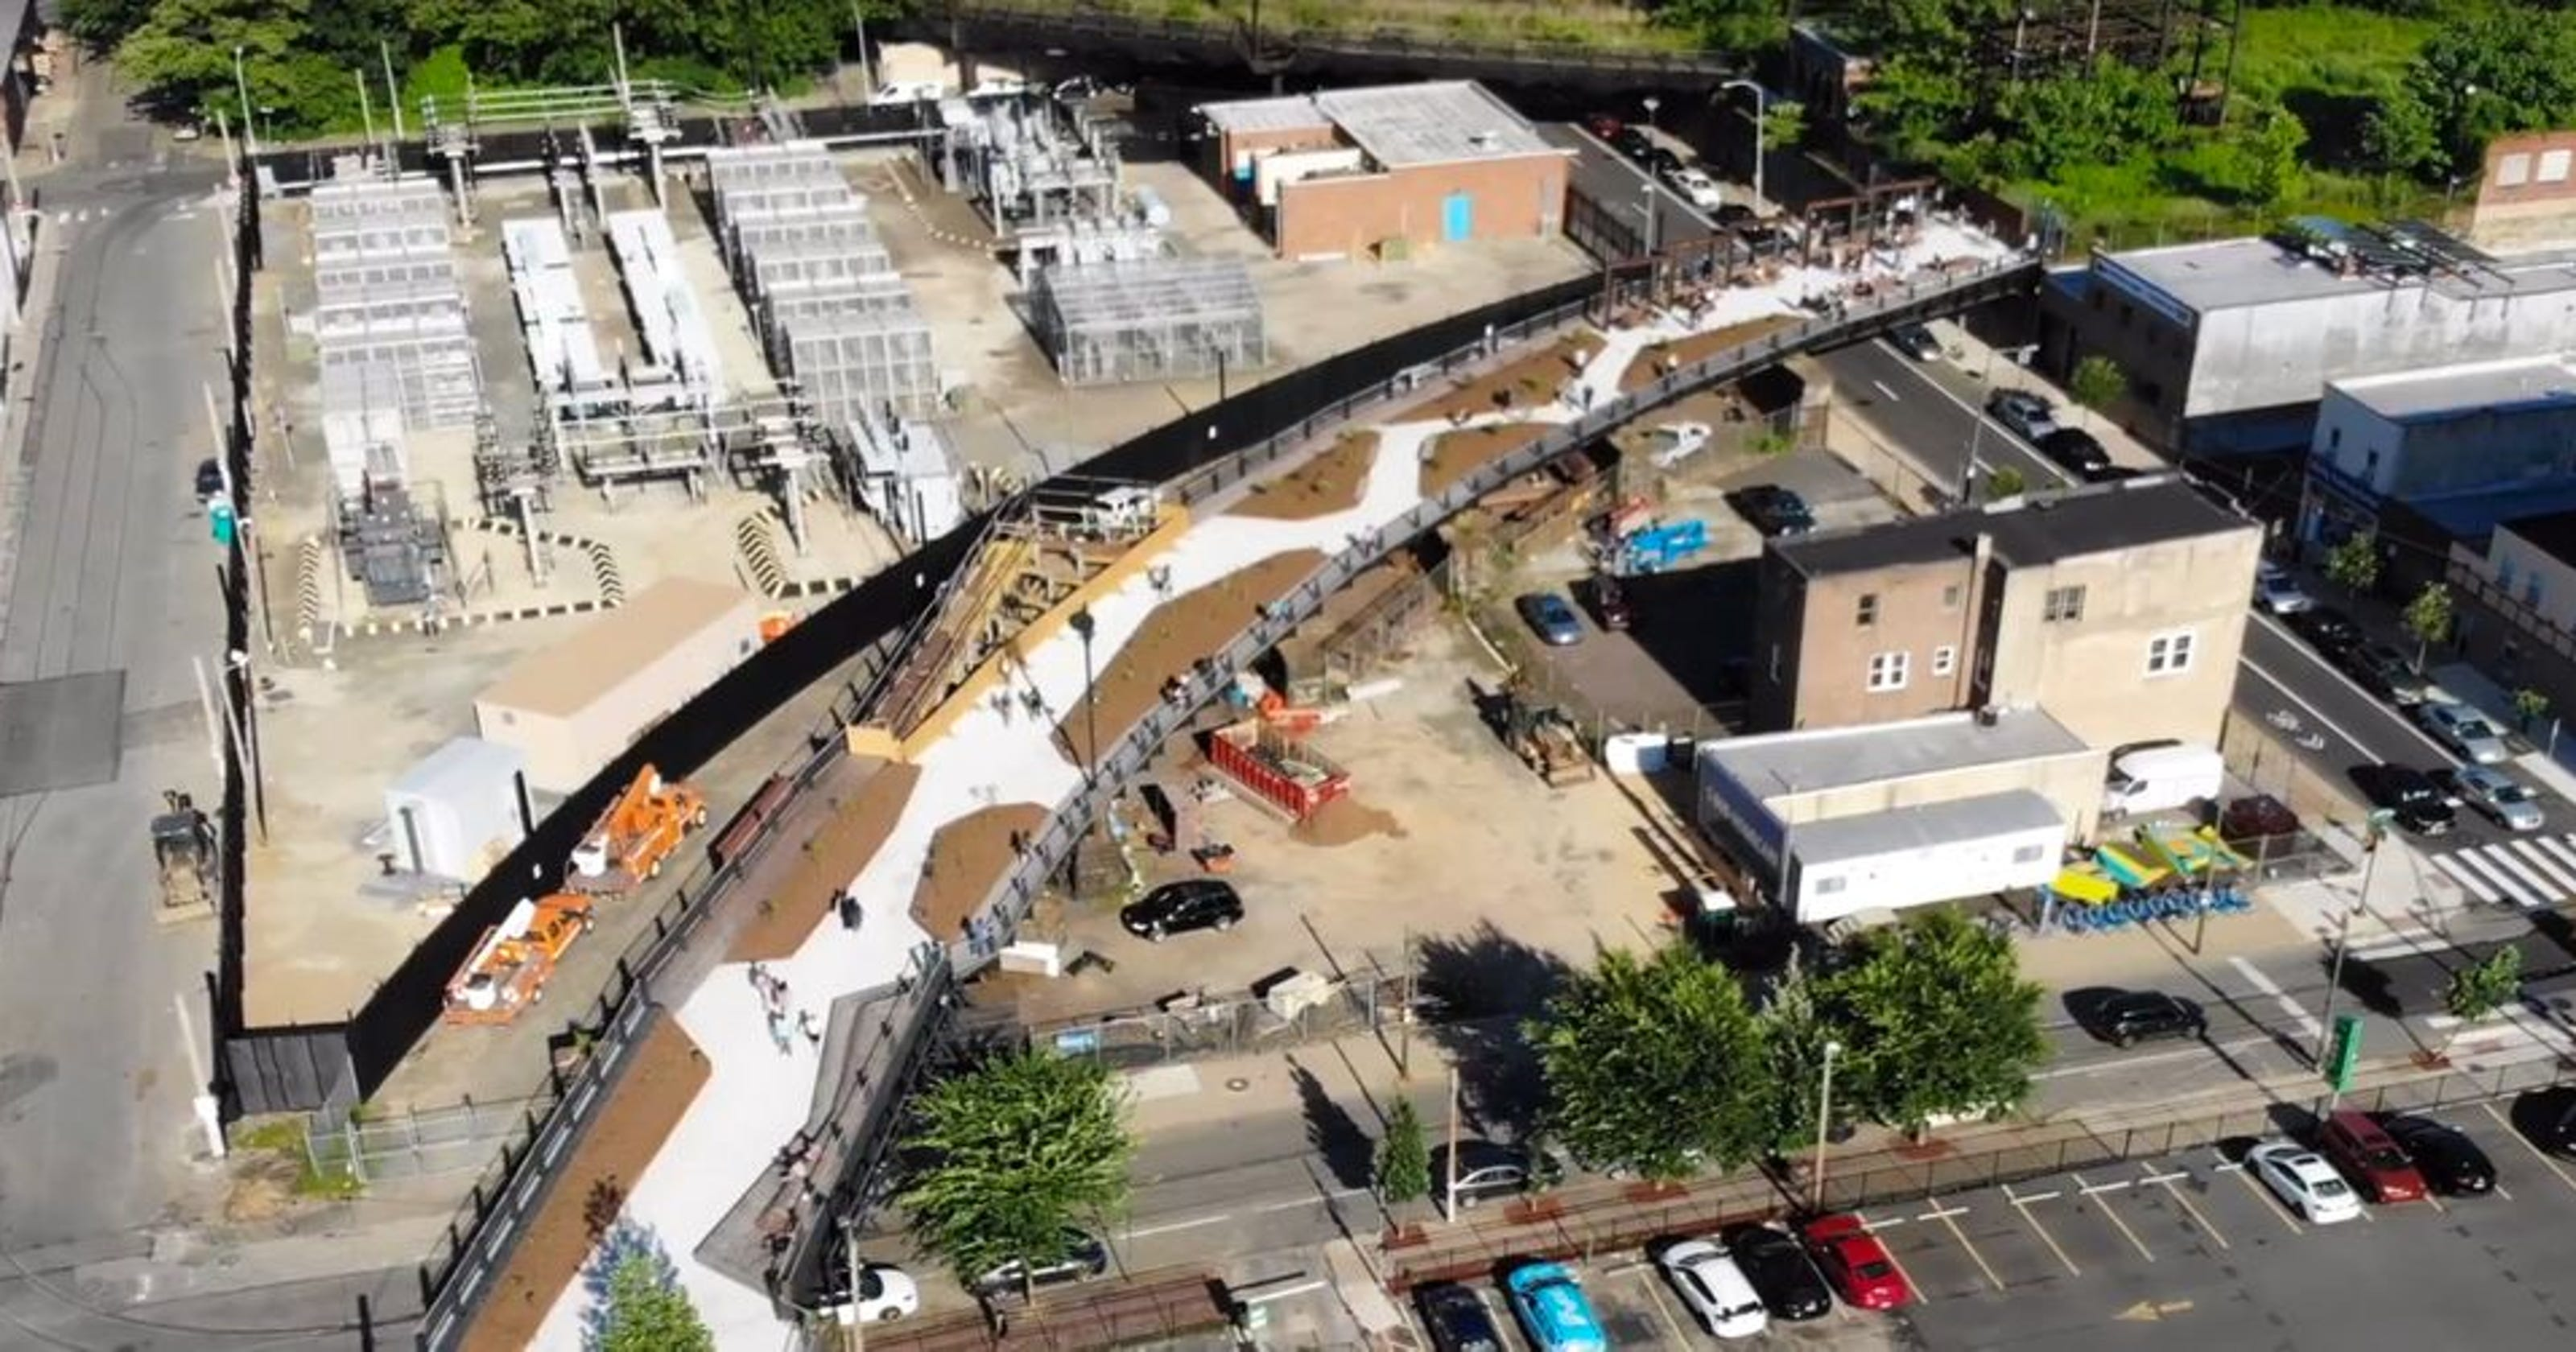 Rail Park drone video: An overview of Philly's newest ...